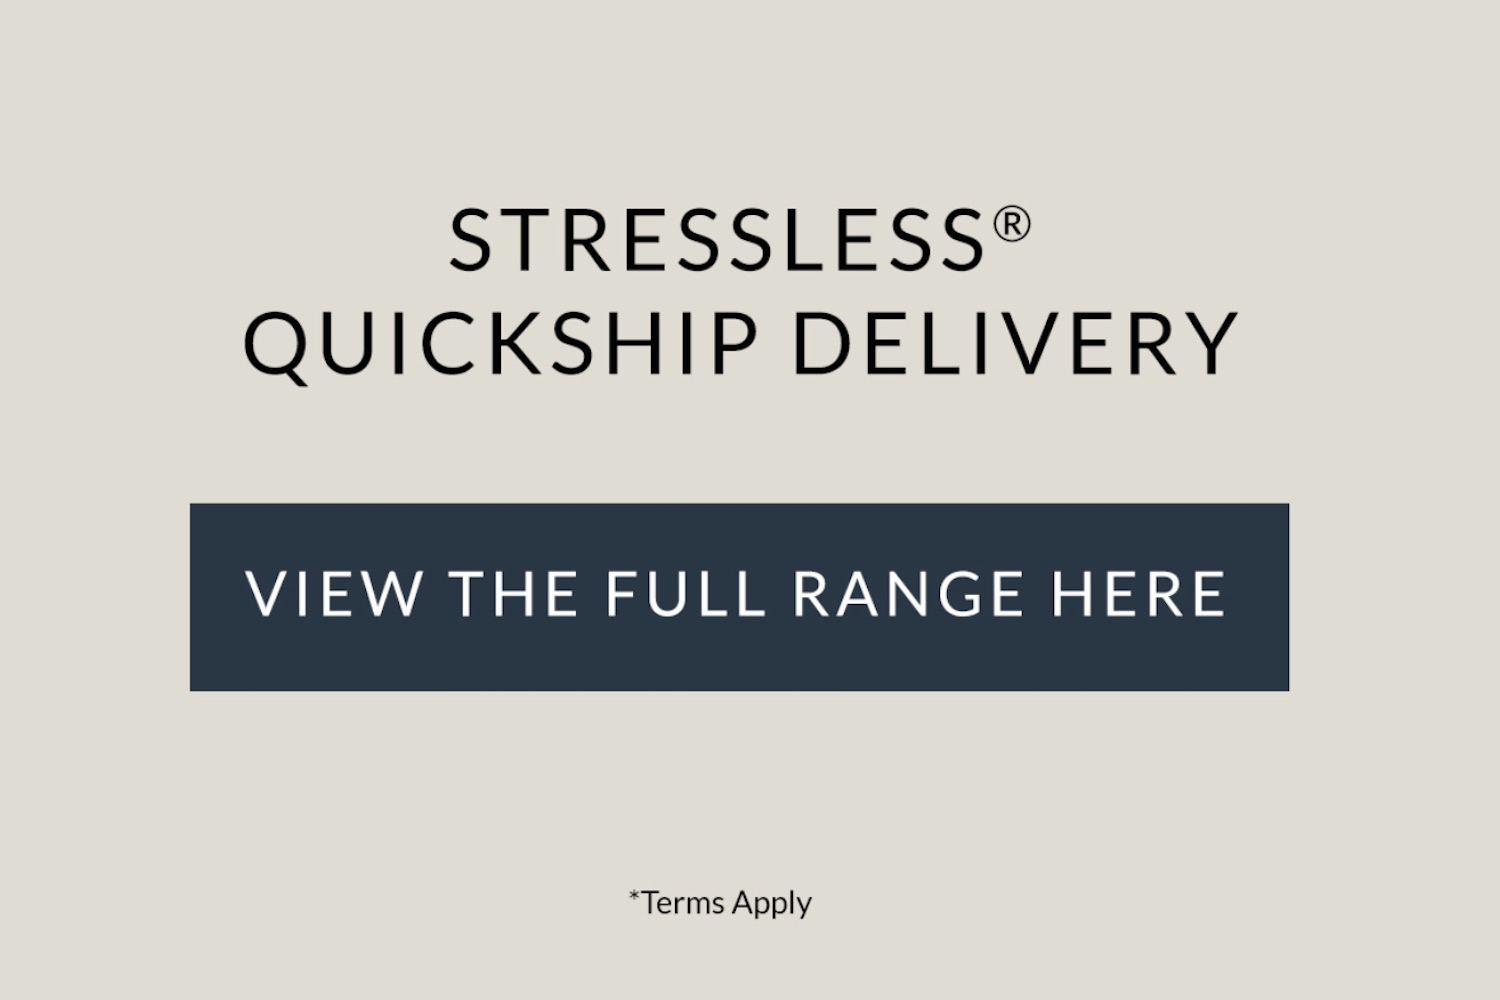 Stressless Quickship delivery